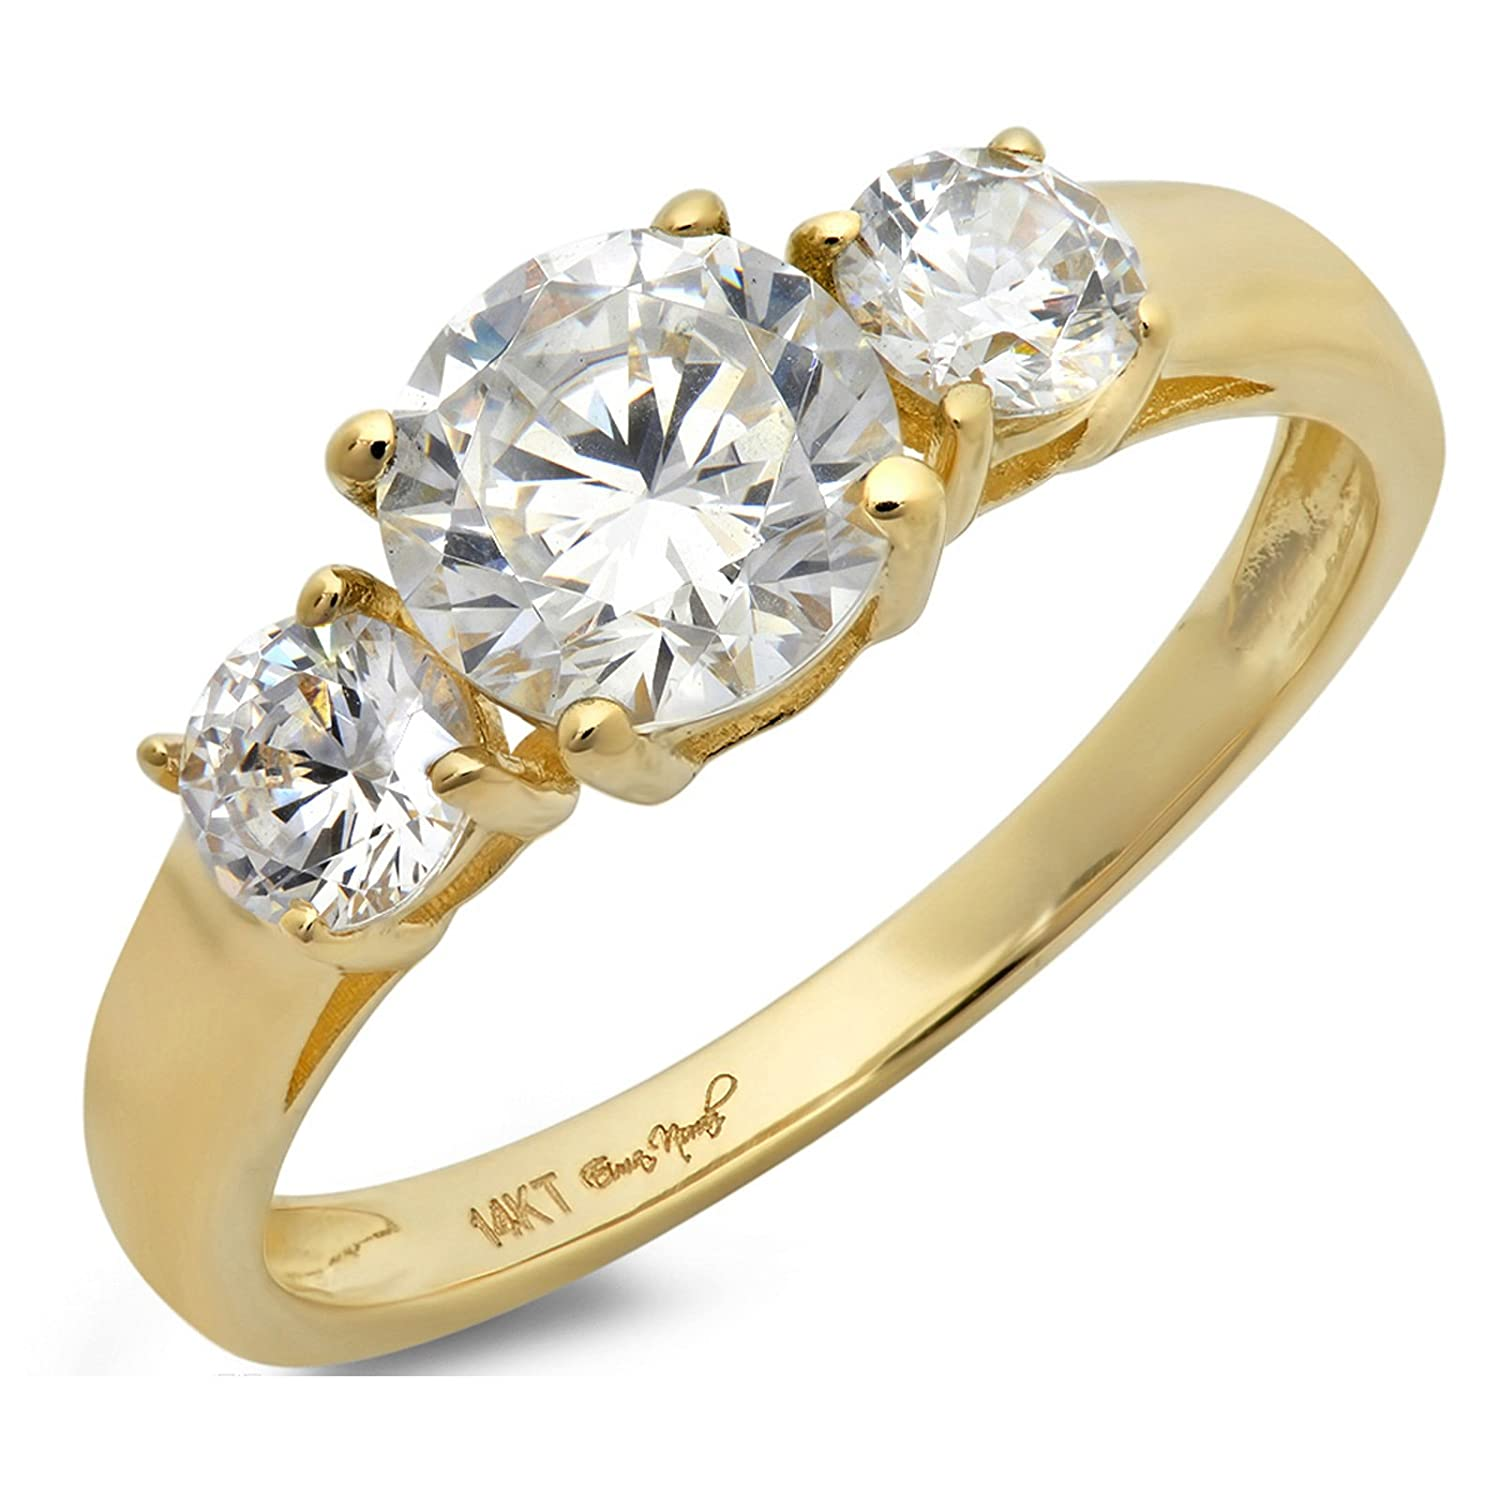 keepsake finish high yellow with polish gold walmart wedding bands band ip her com for